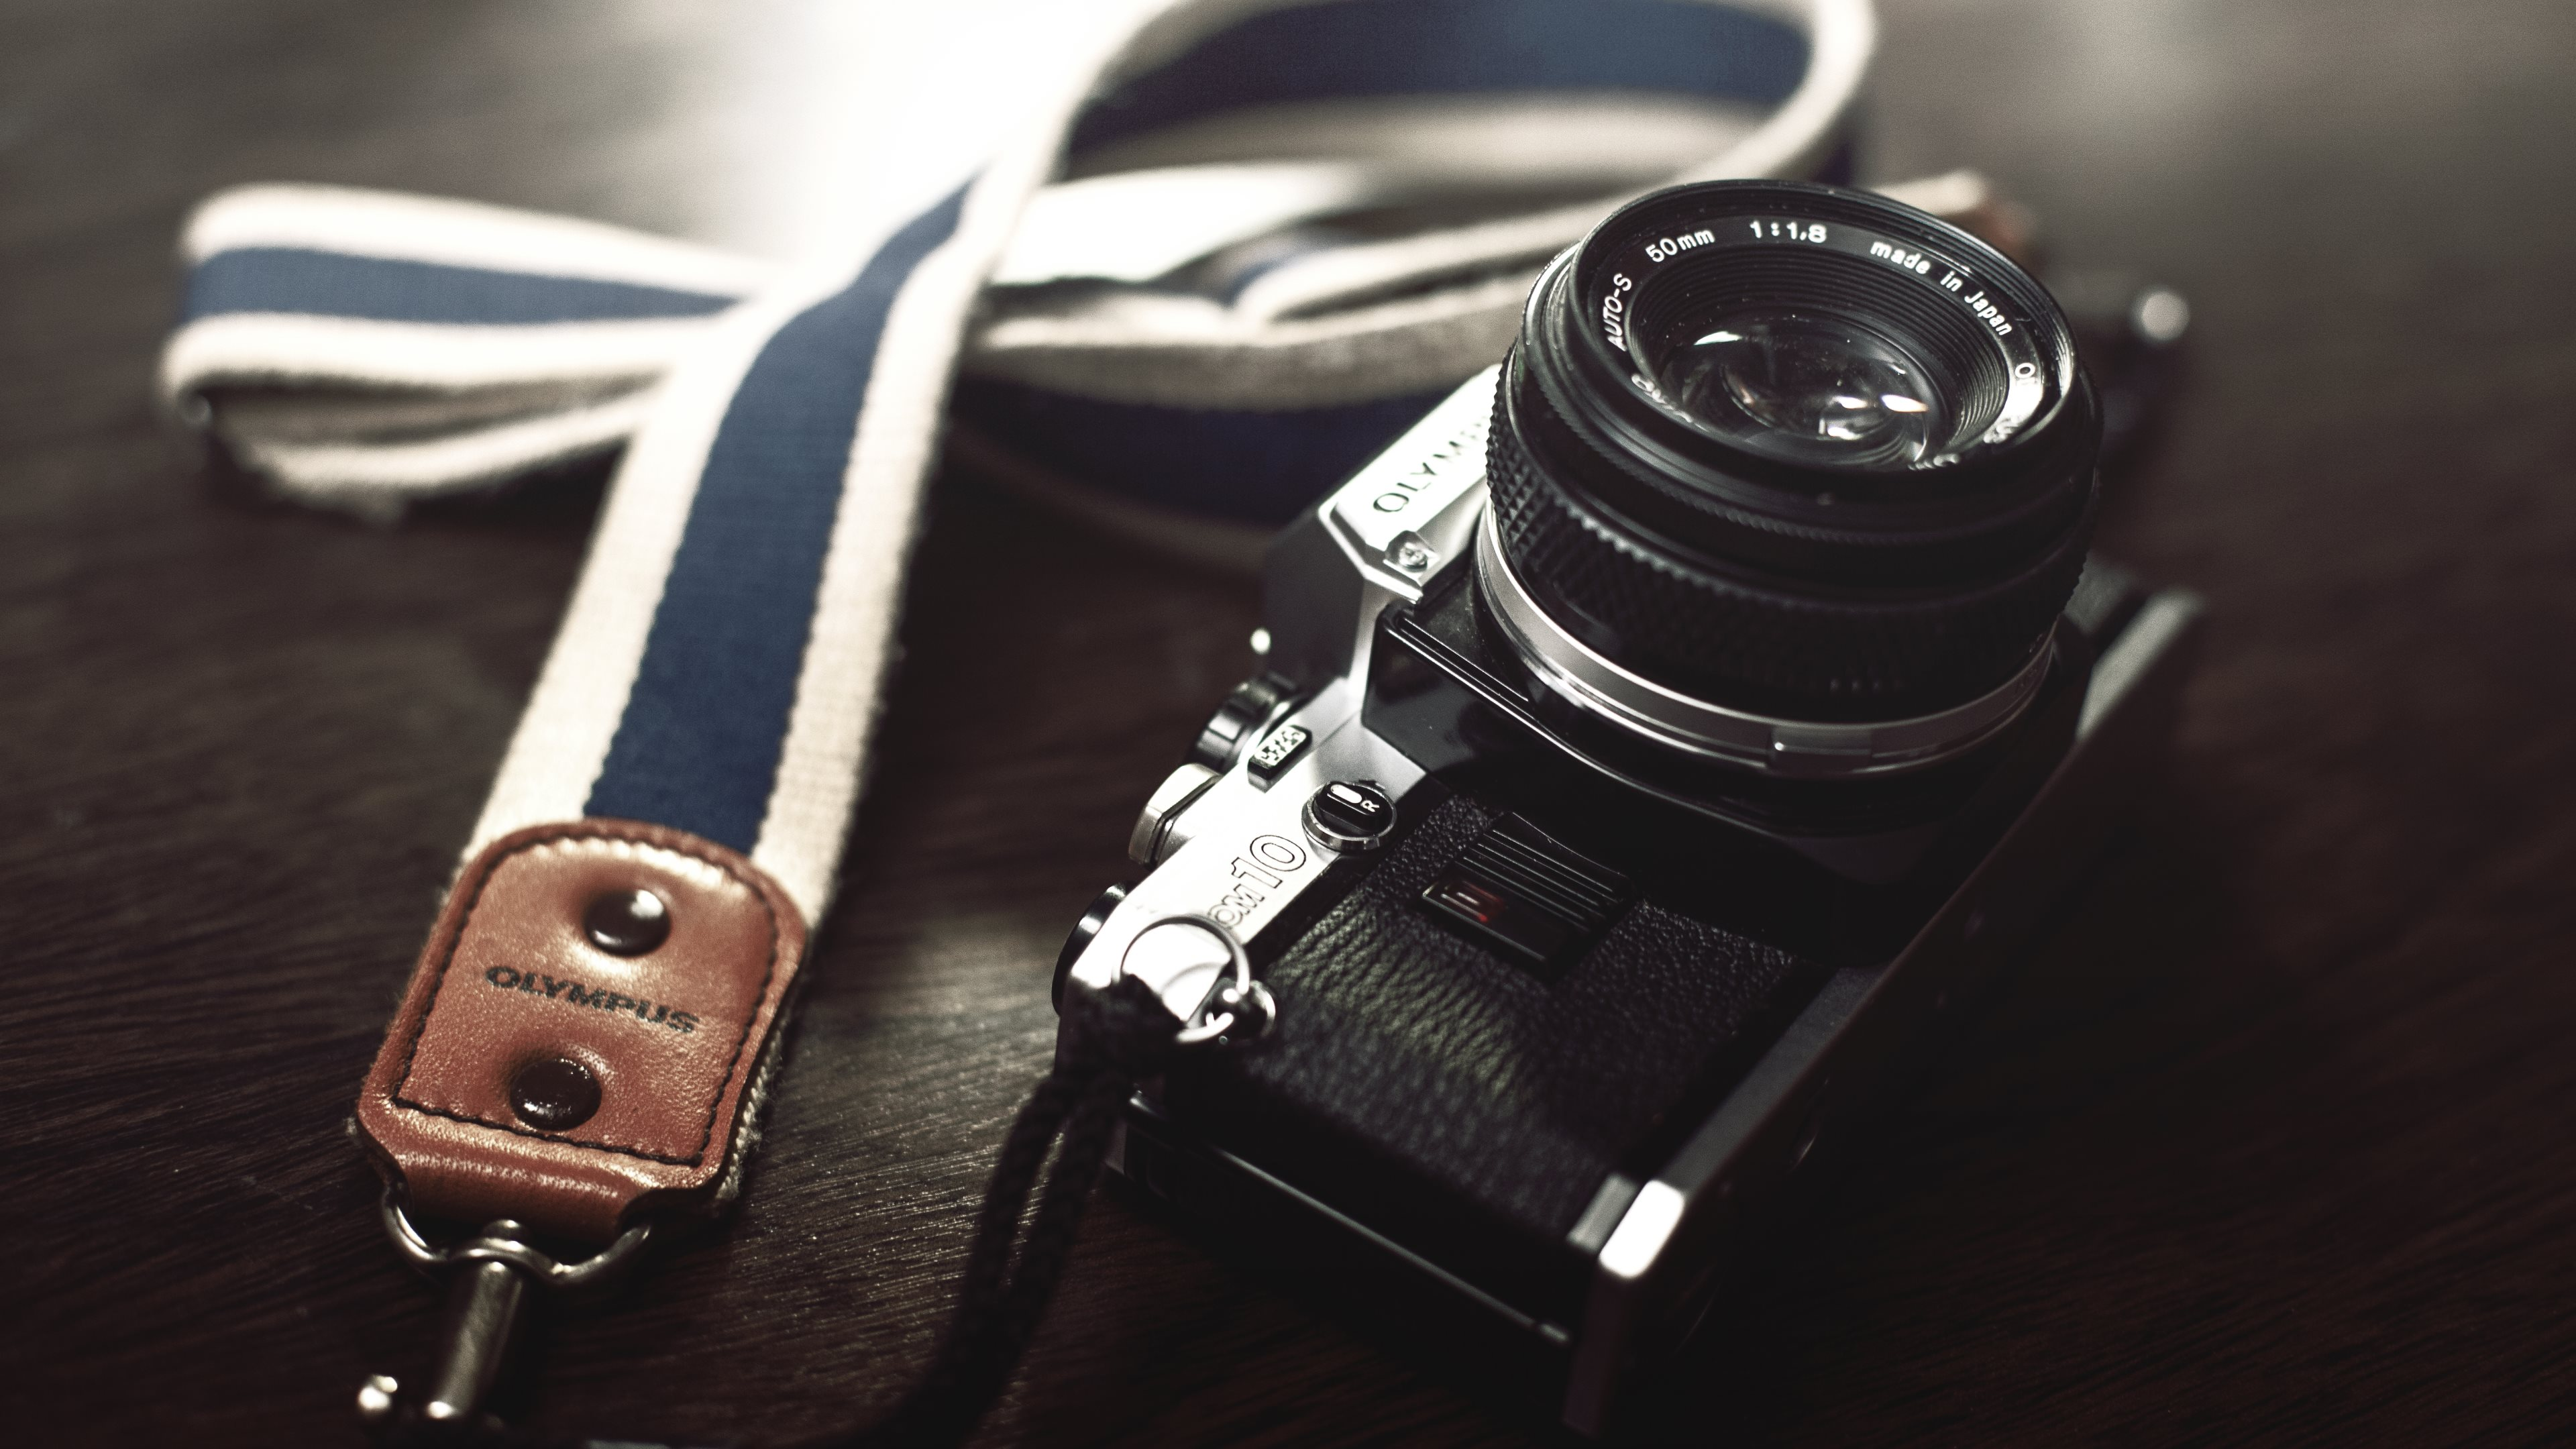 Olympus-Retro-Camera-uhd-wallpapers